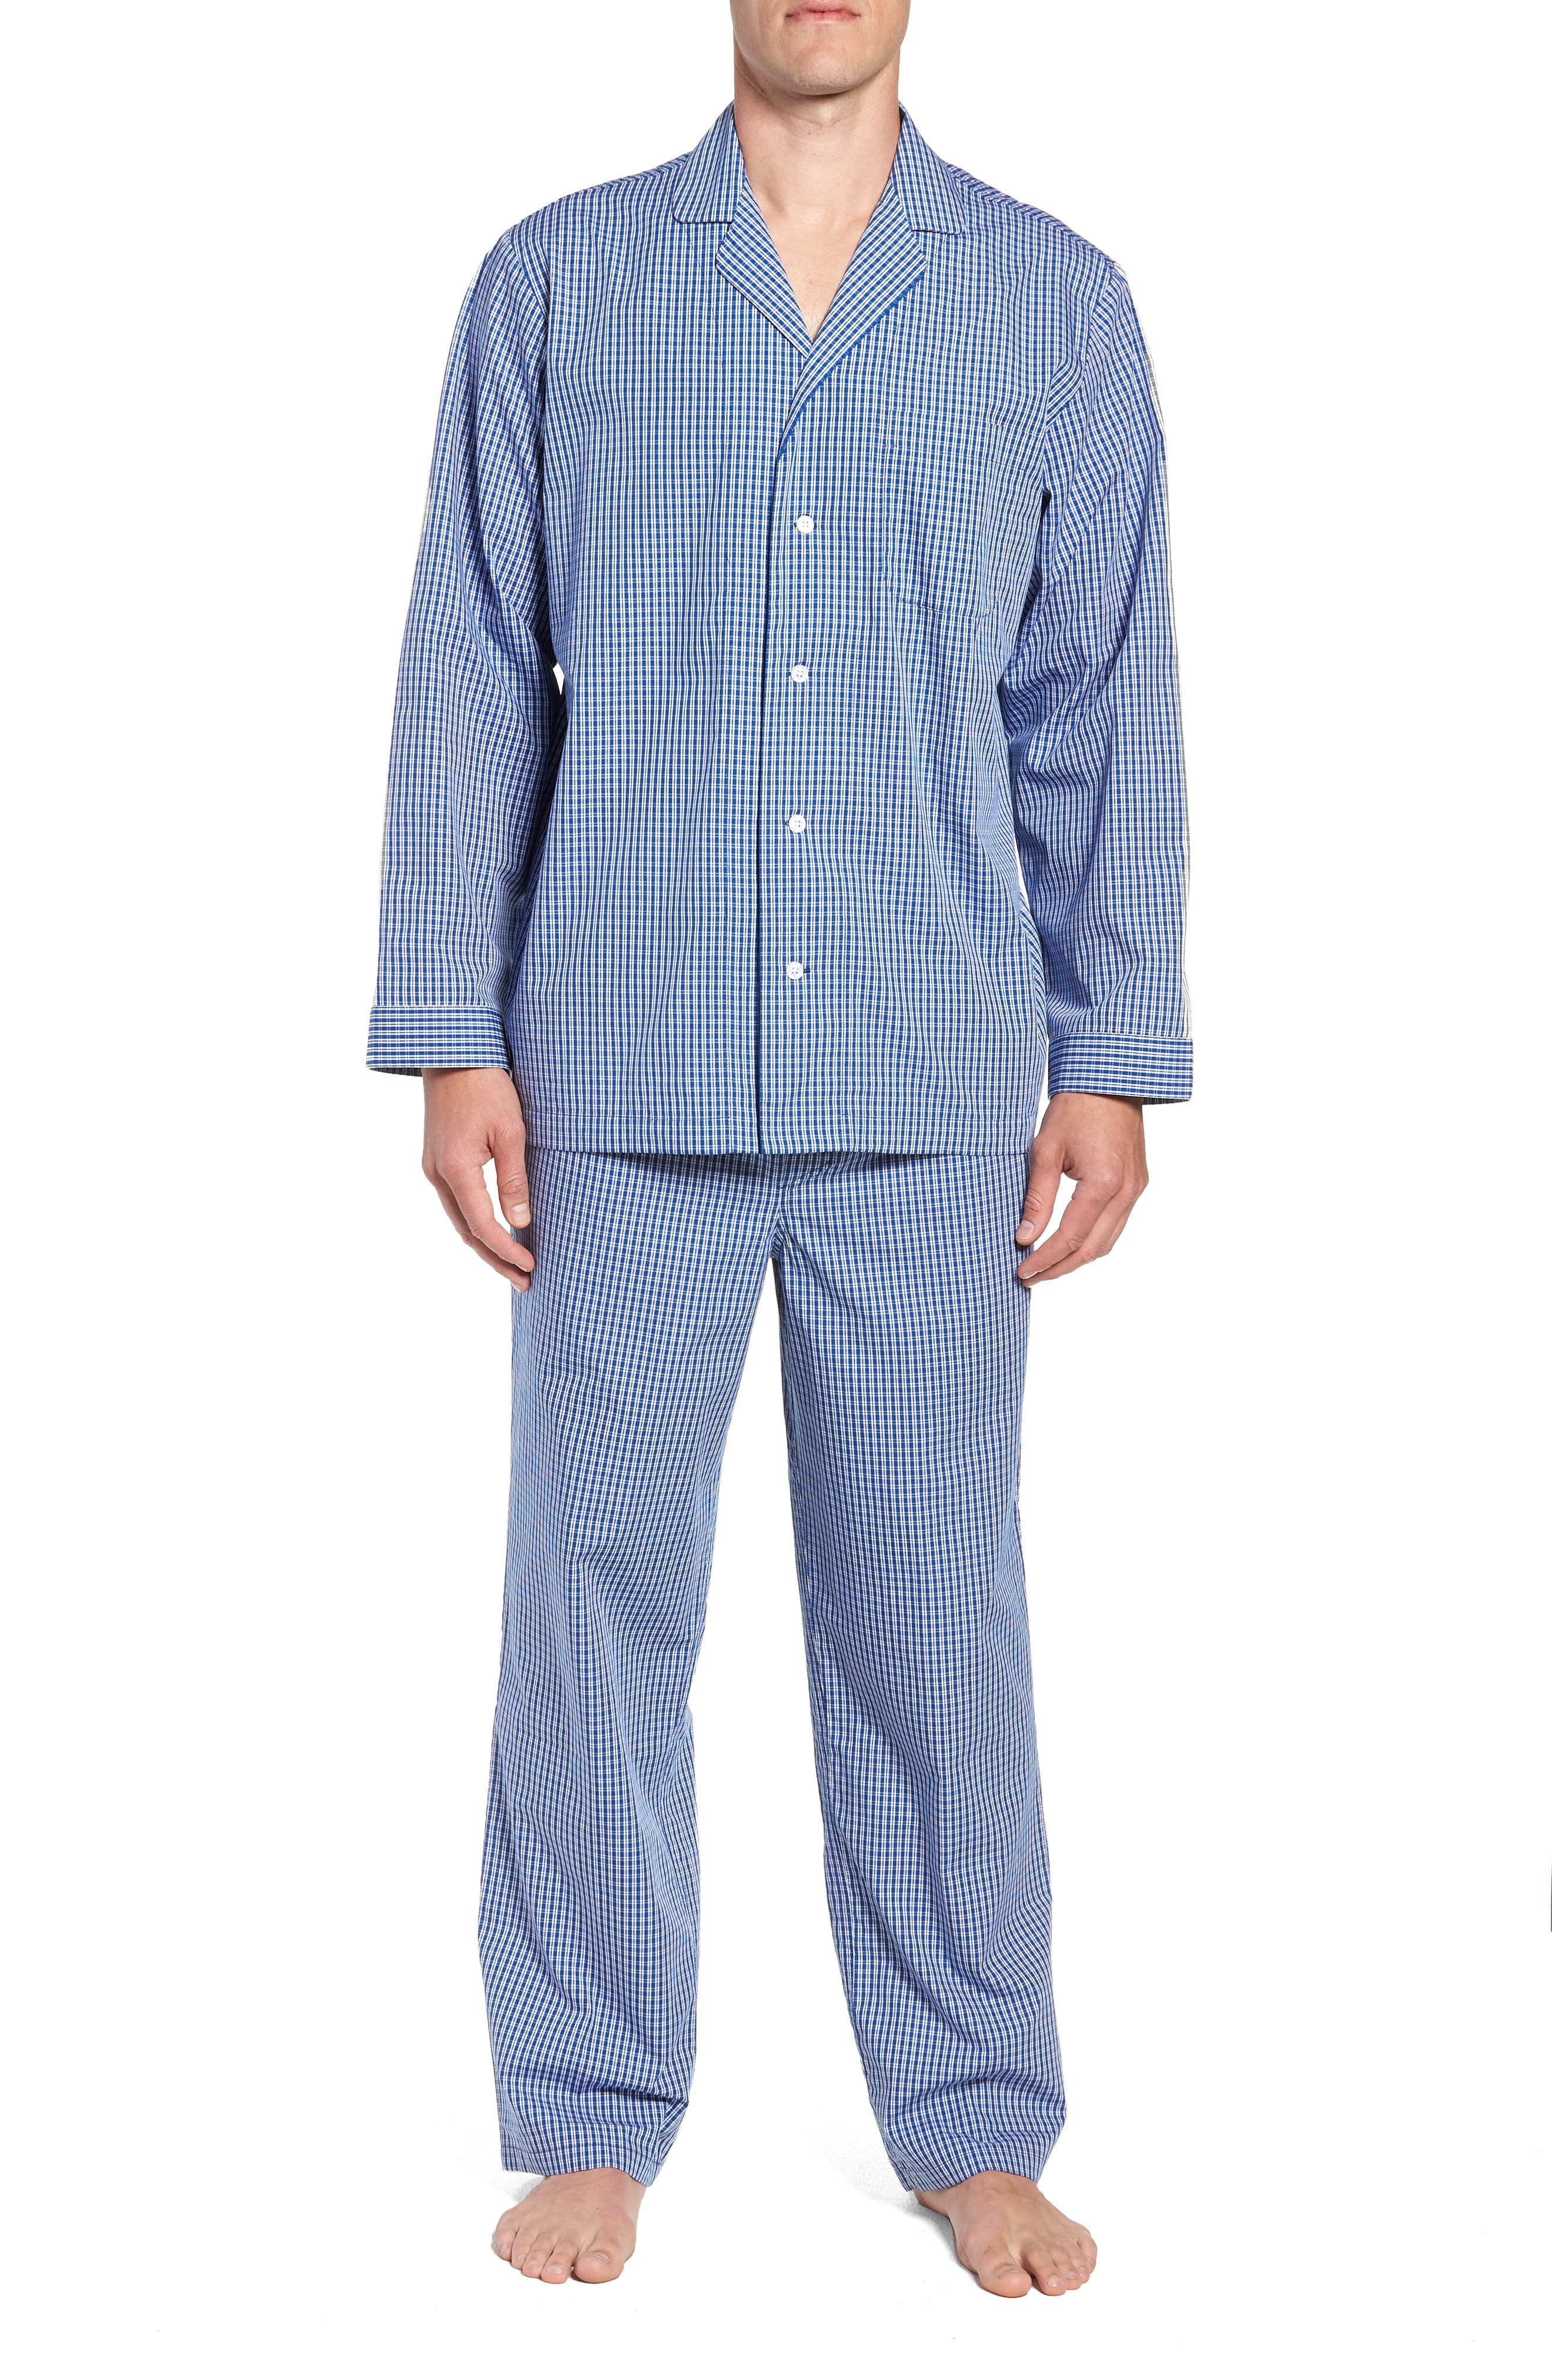 Poplin Pajama Set,                         Main,                         color, BLUE DEEP MICRO CHECK